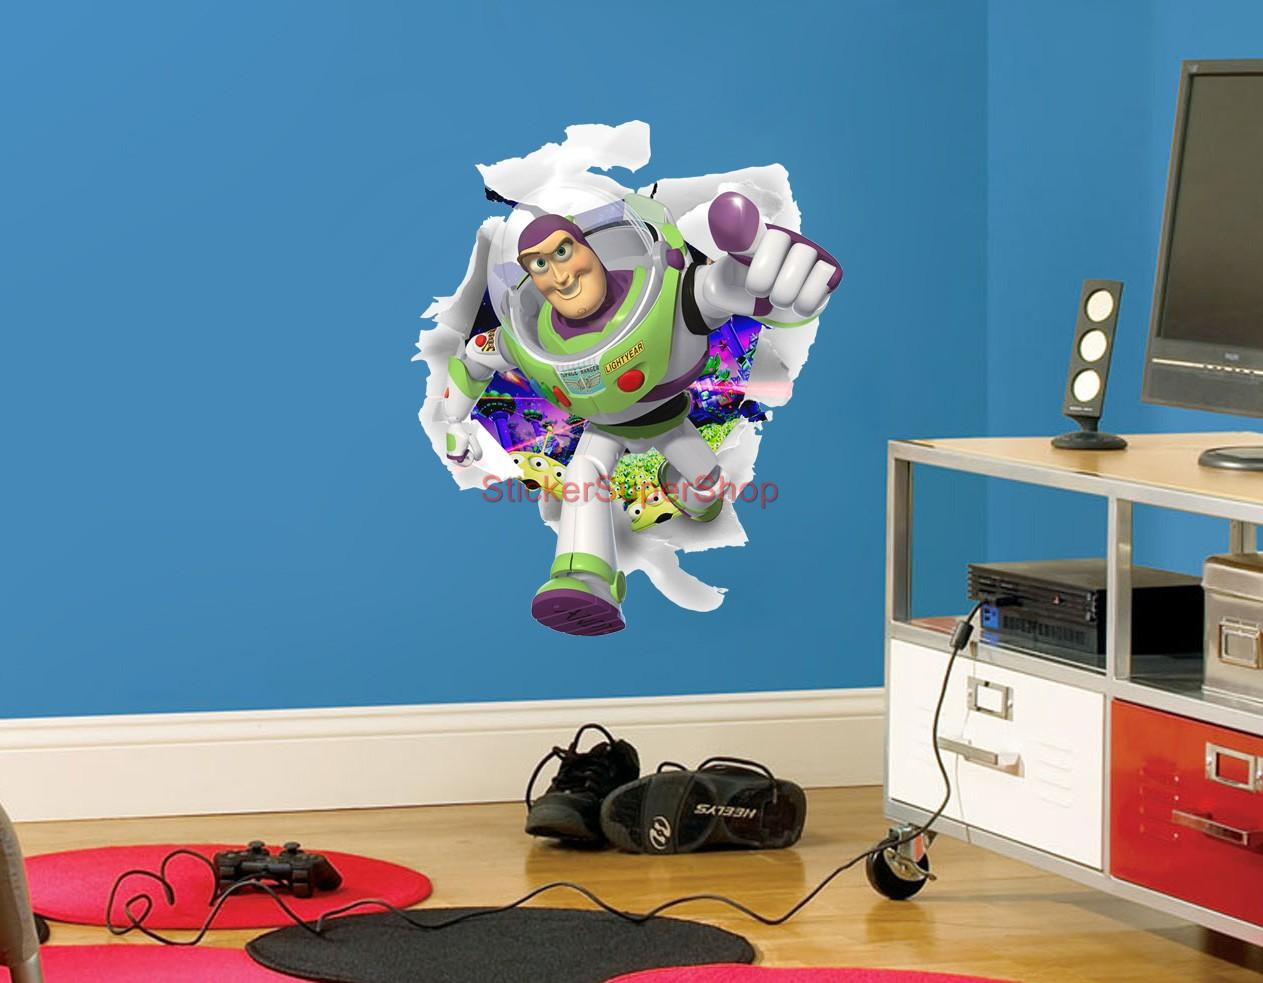 buzz lightyear toy story decal removable wall sticker art popular buzz lightyear stickers buy cheap buzz lightyear